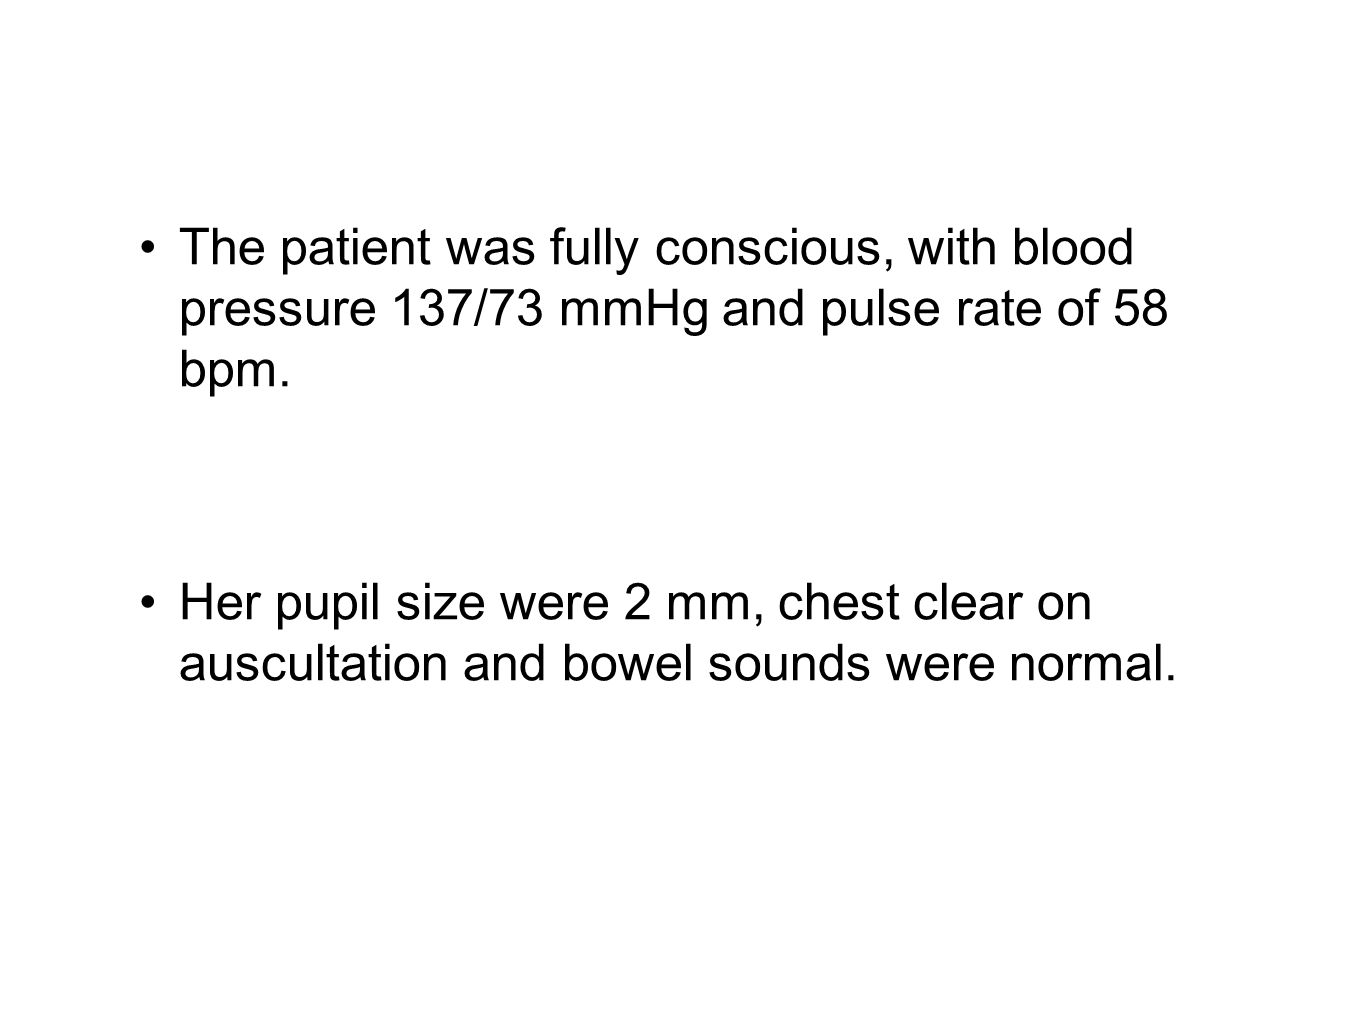 The patient was fully conscious, with blood pressure 137/73 mmHg and pulse rate of 58 bpm.